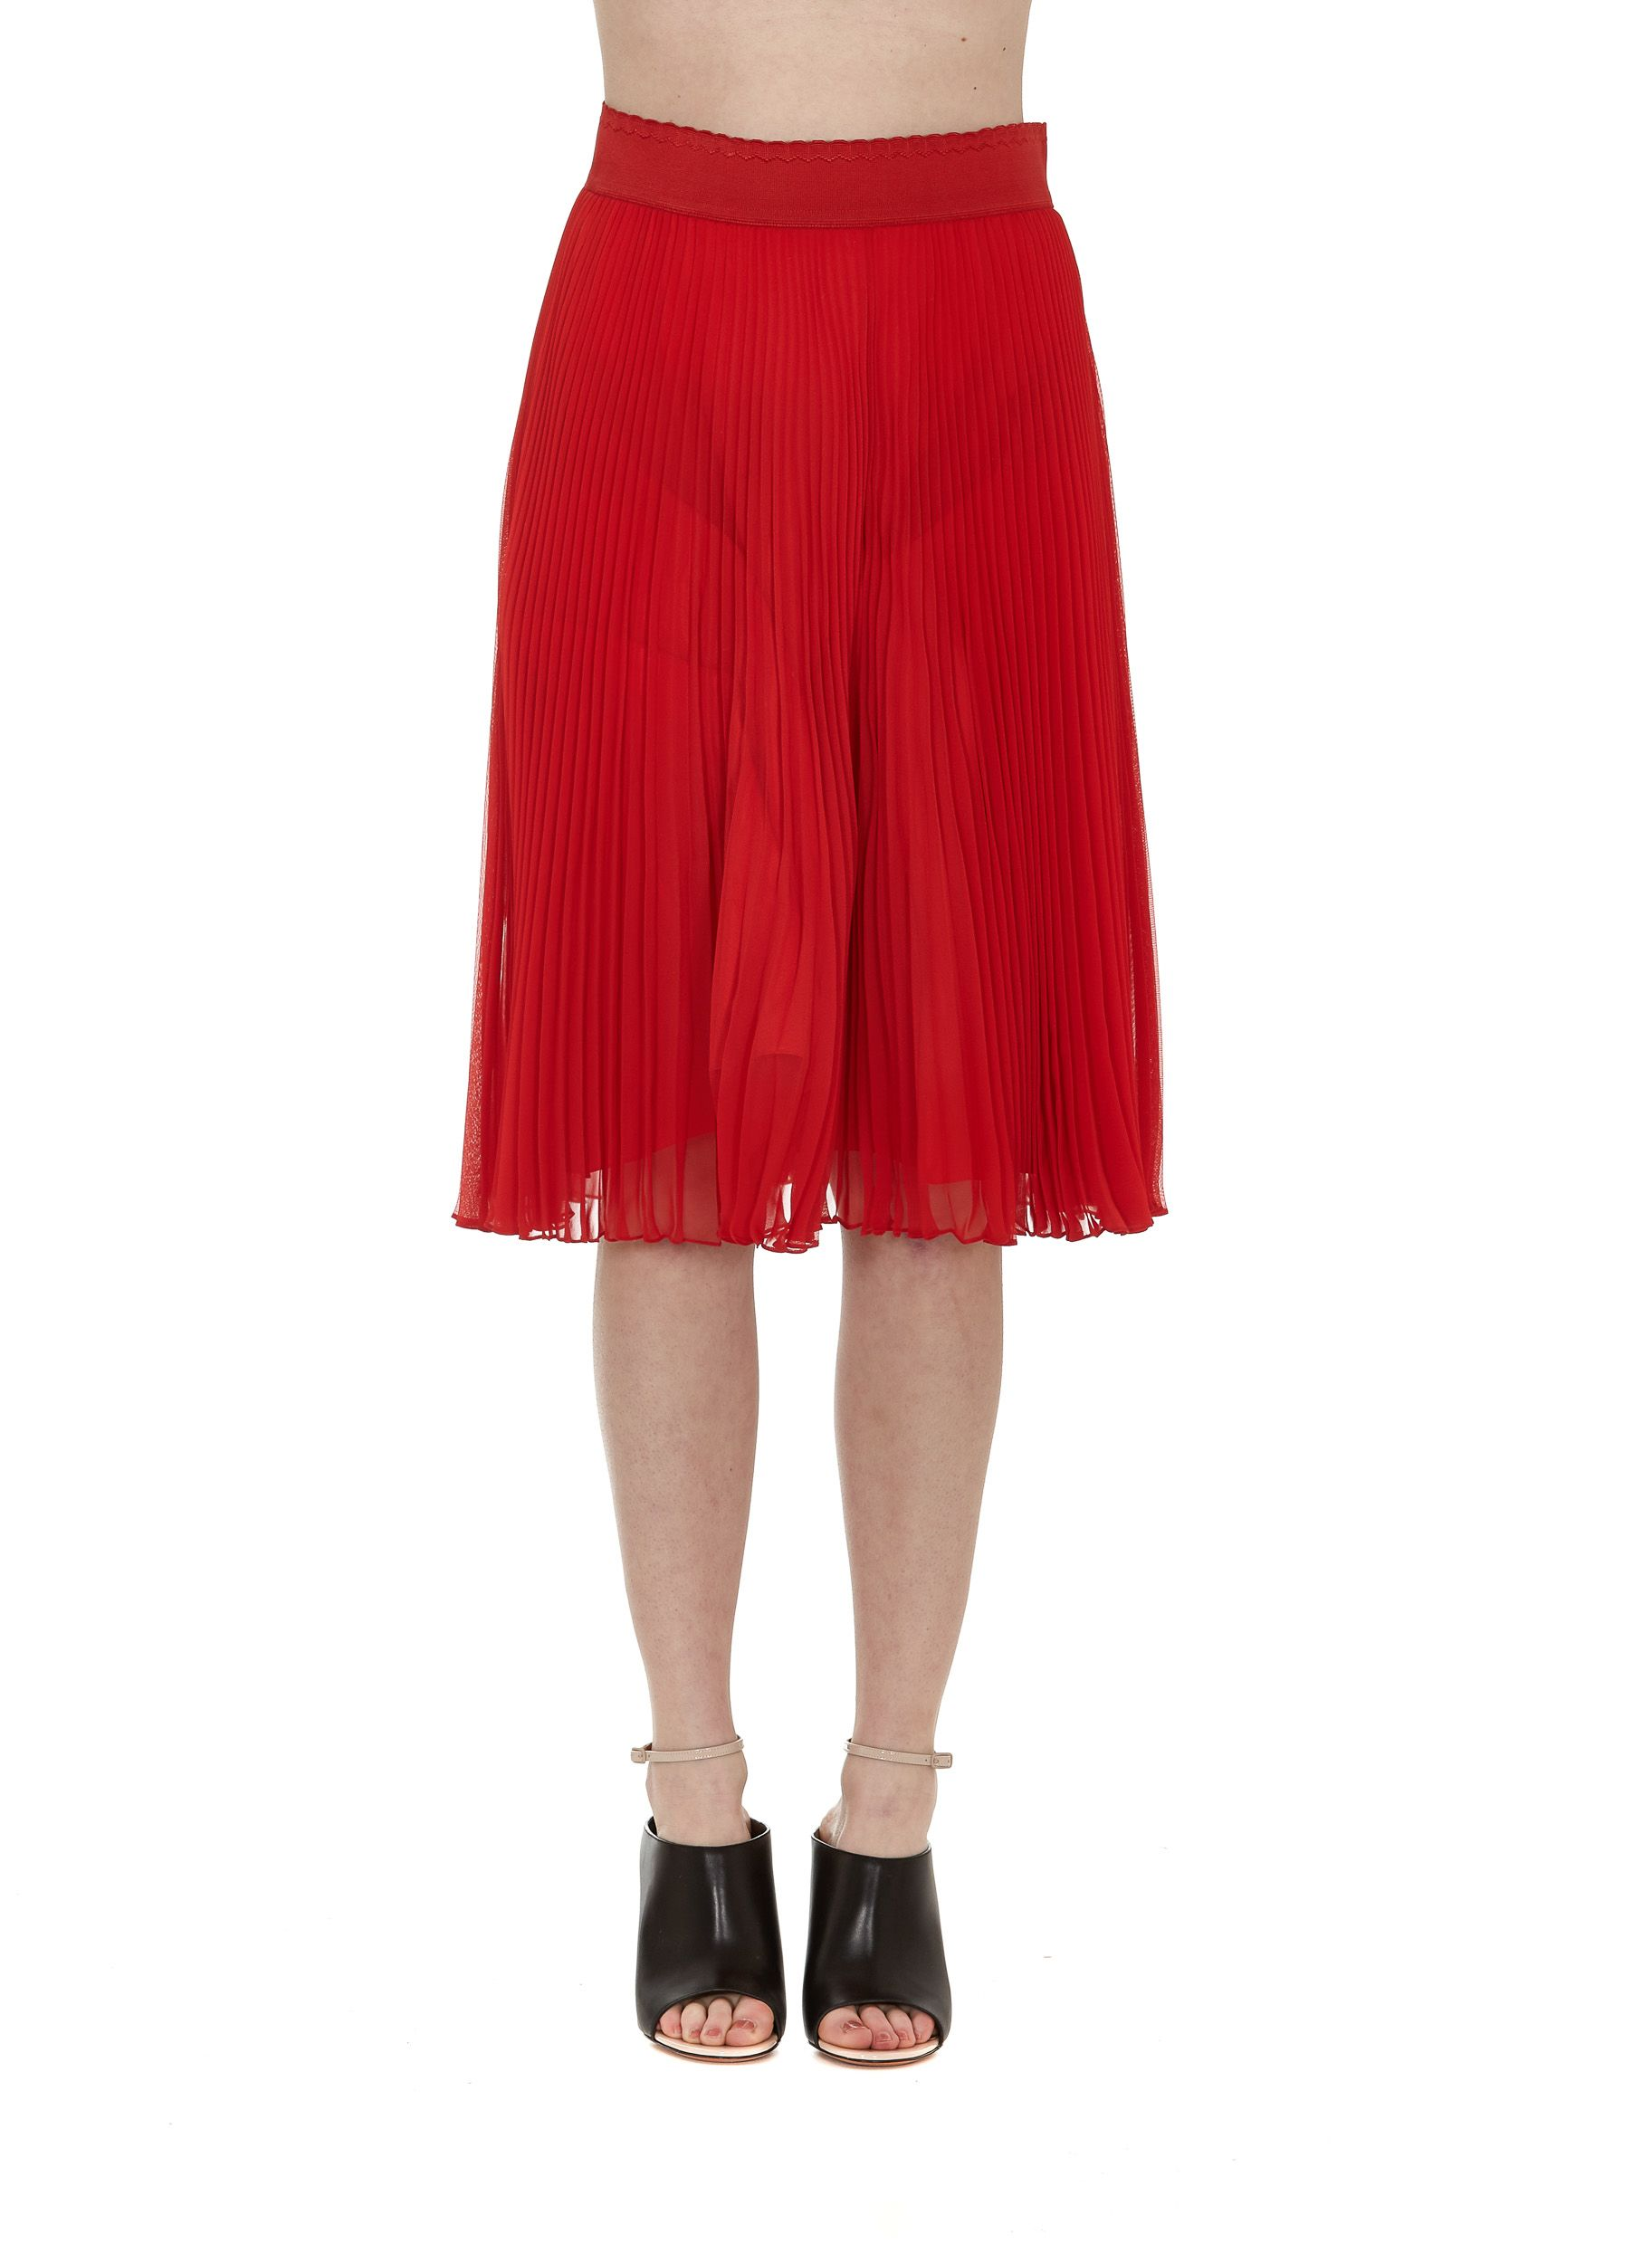 Givenchy Plisse Skirt